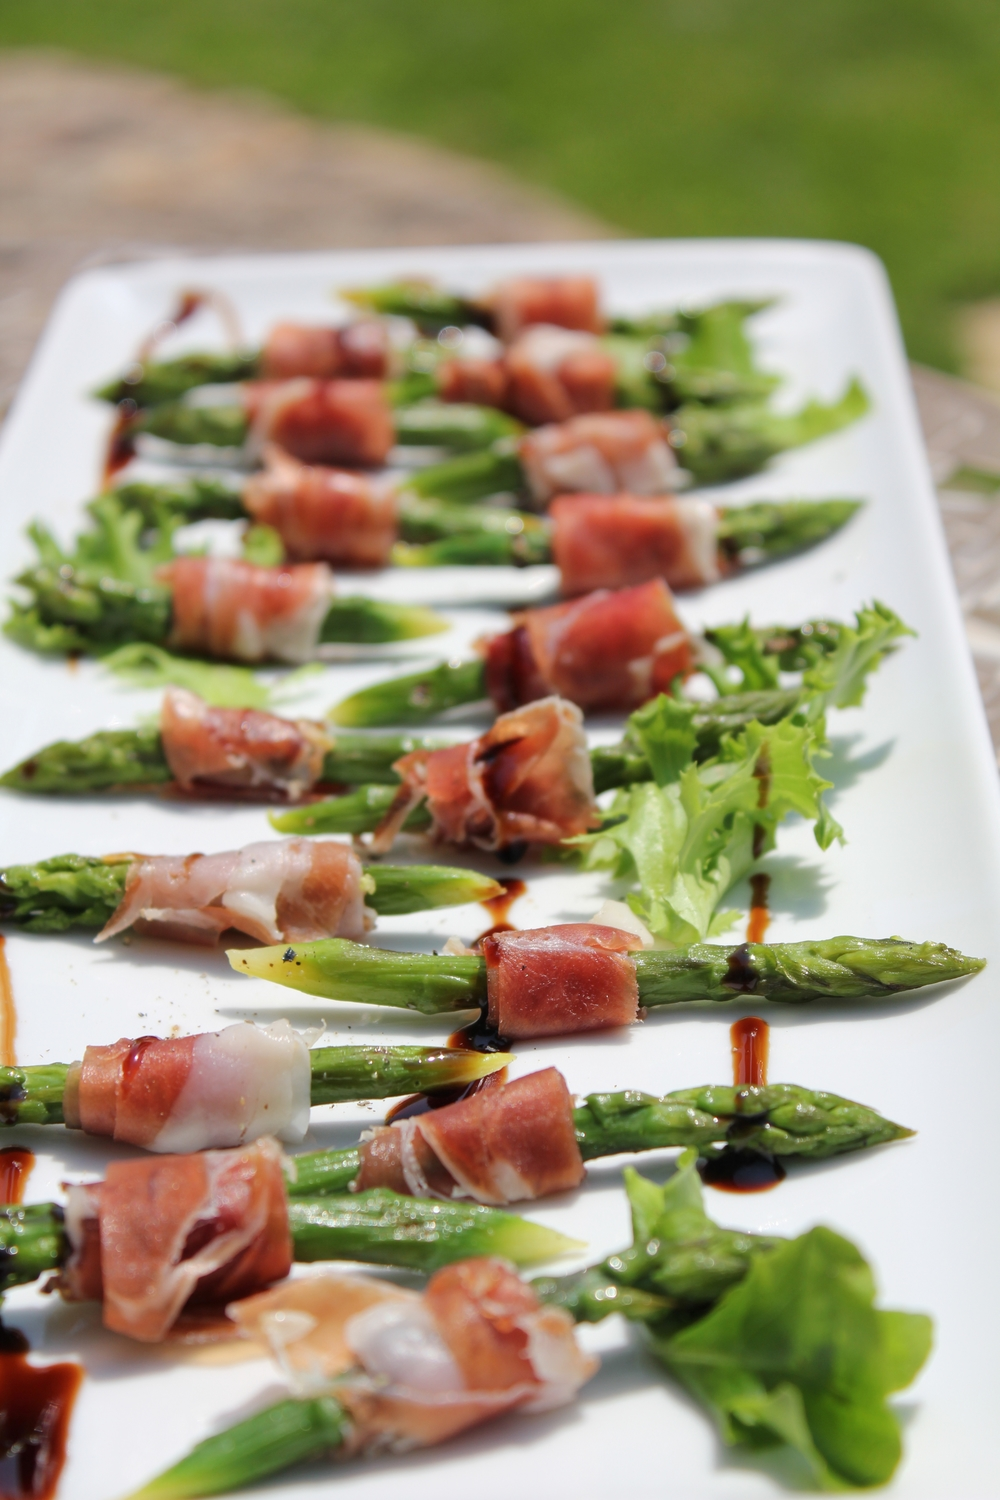 Parma ham, asparagus and balsamic reduction